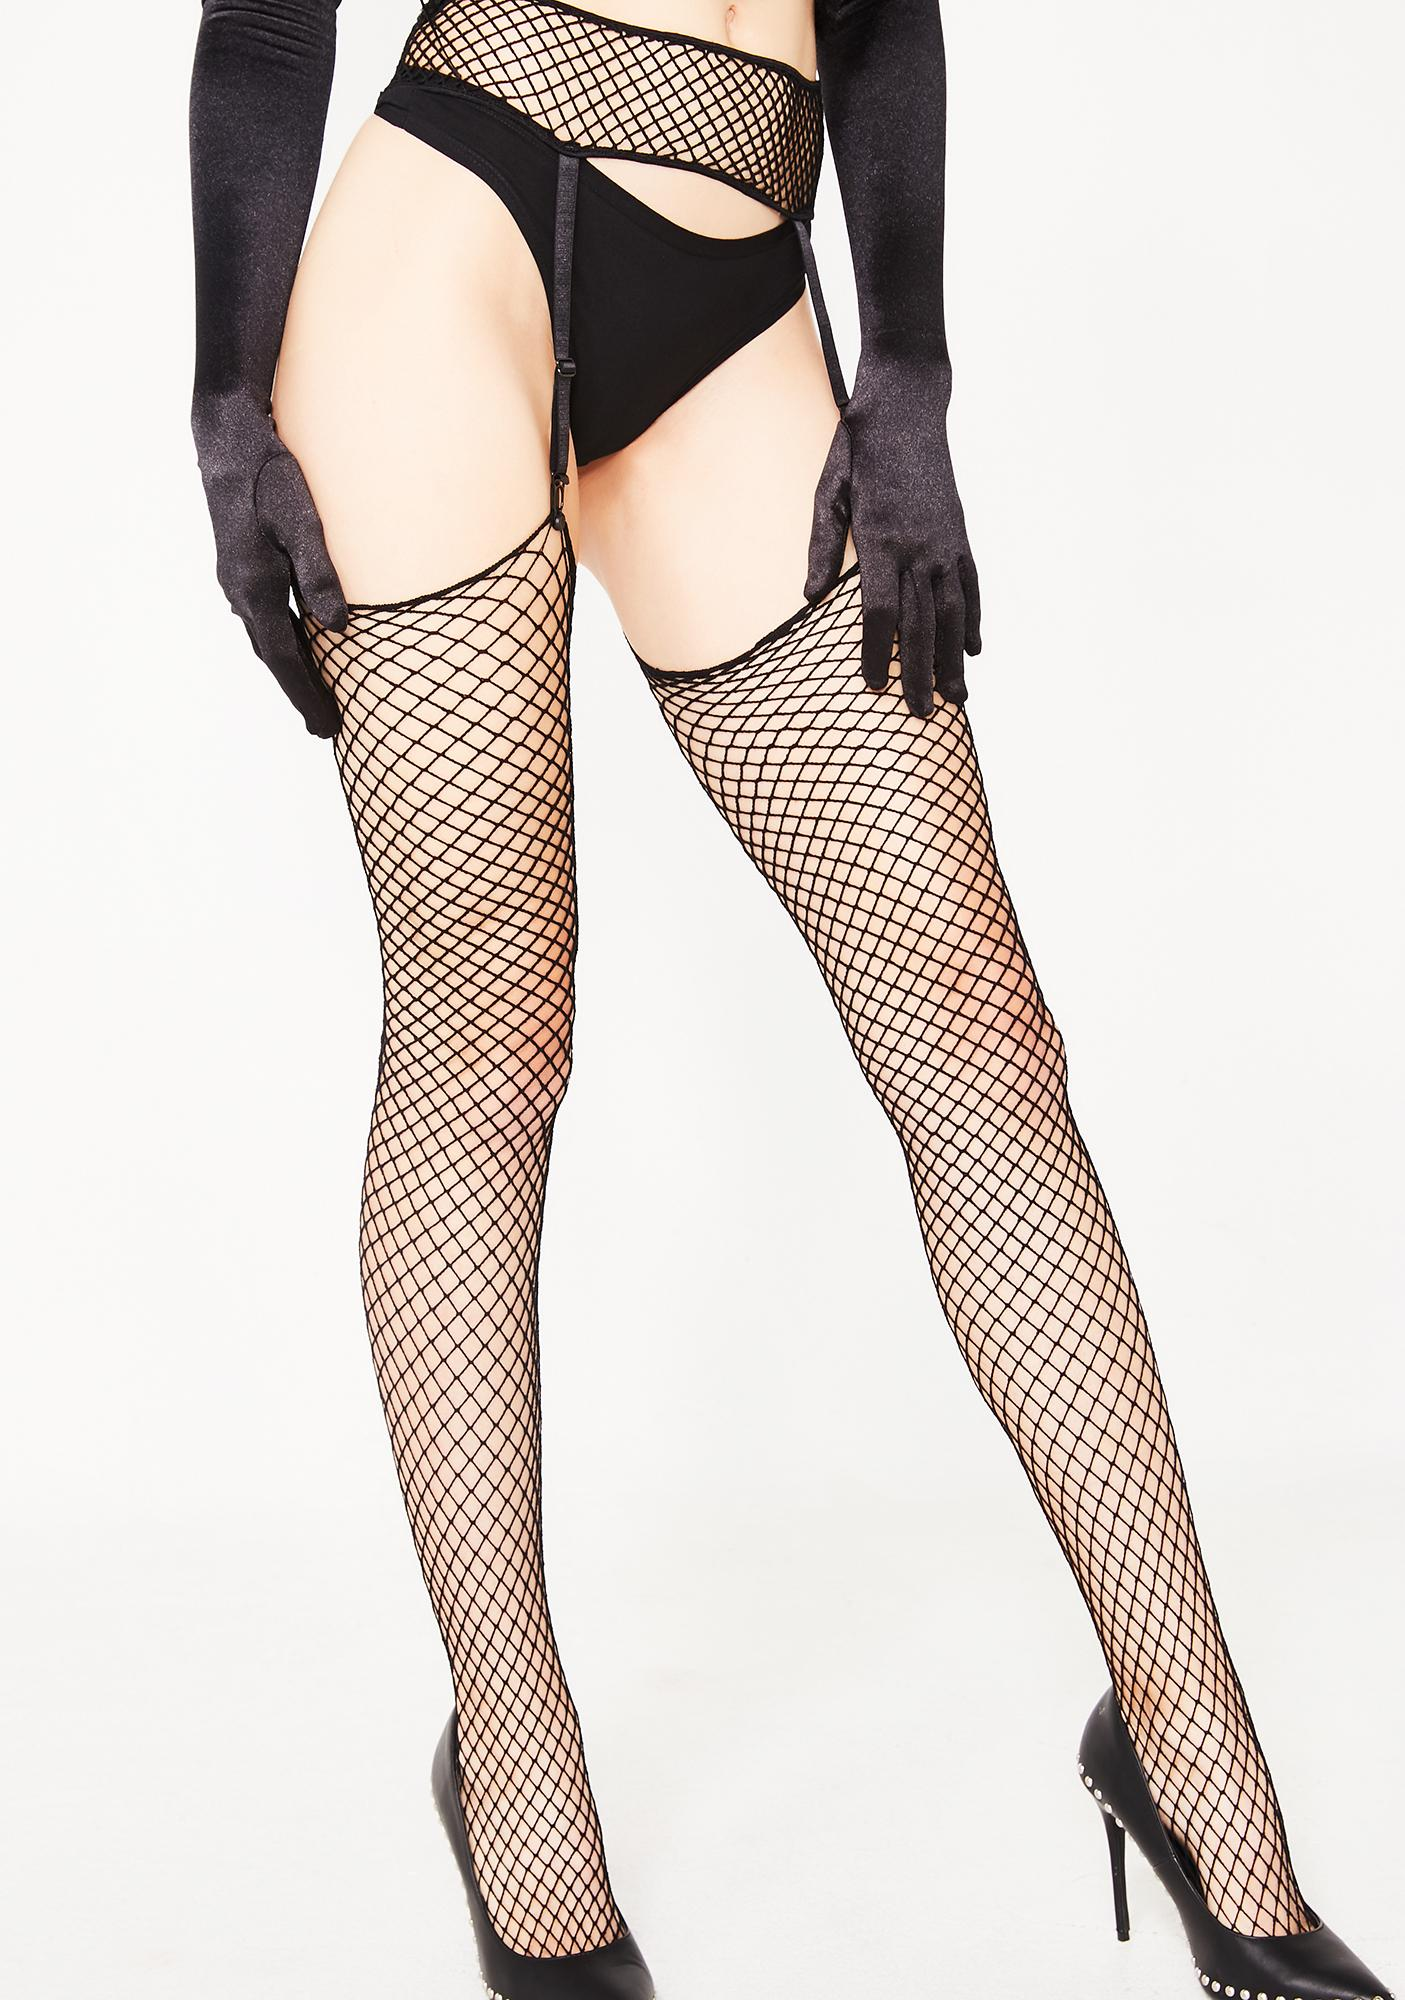 Seduce  Em Garter Belt N  Stockings 1ded353a4